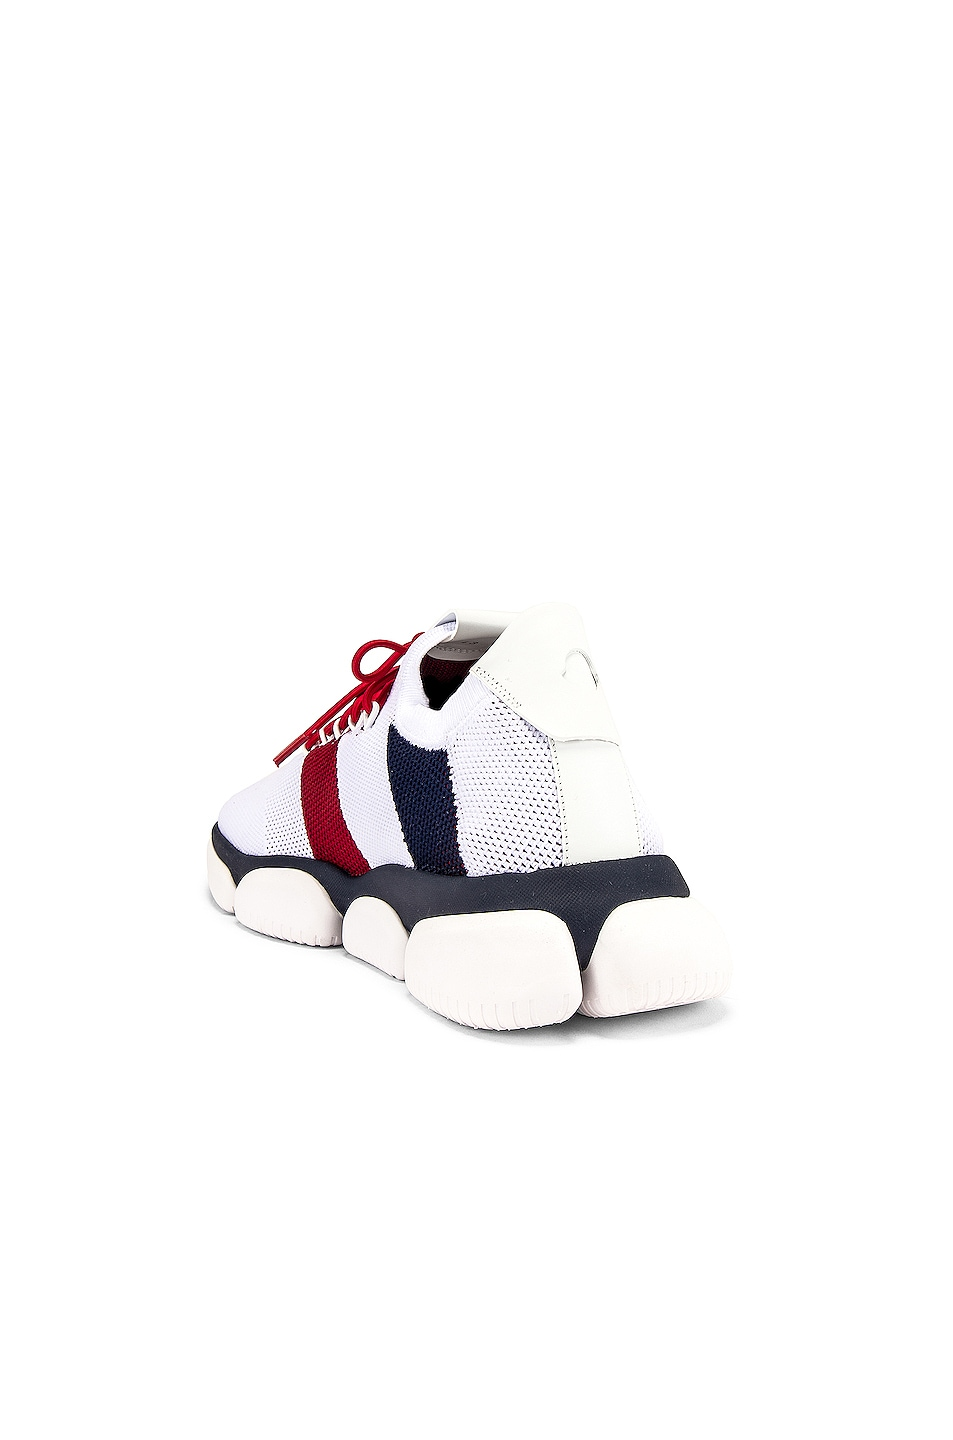 Image 3 of Moncler Low Top Sneaker in Red & White & Blue